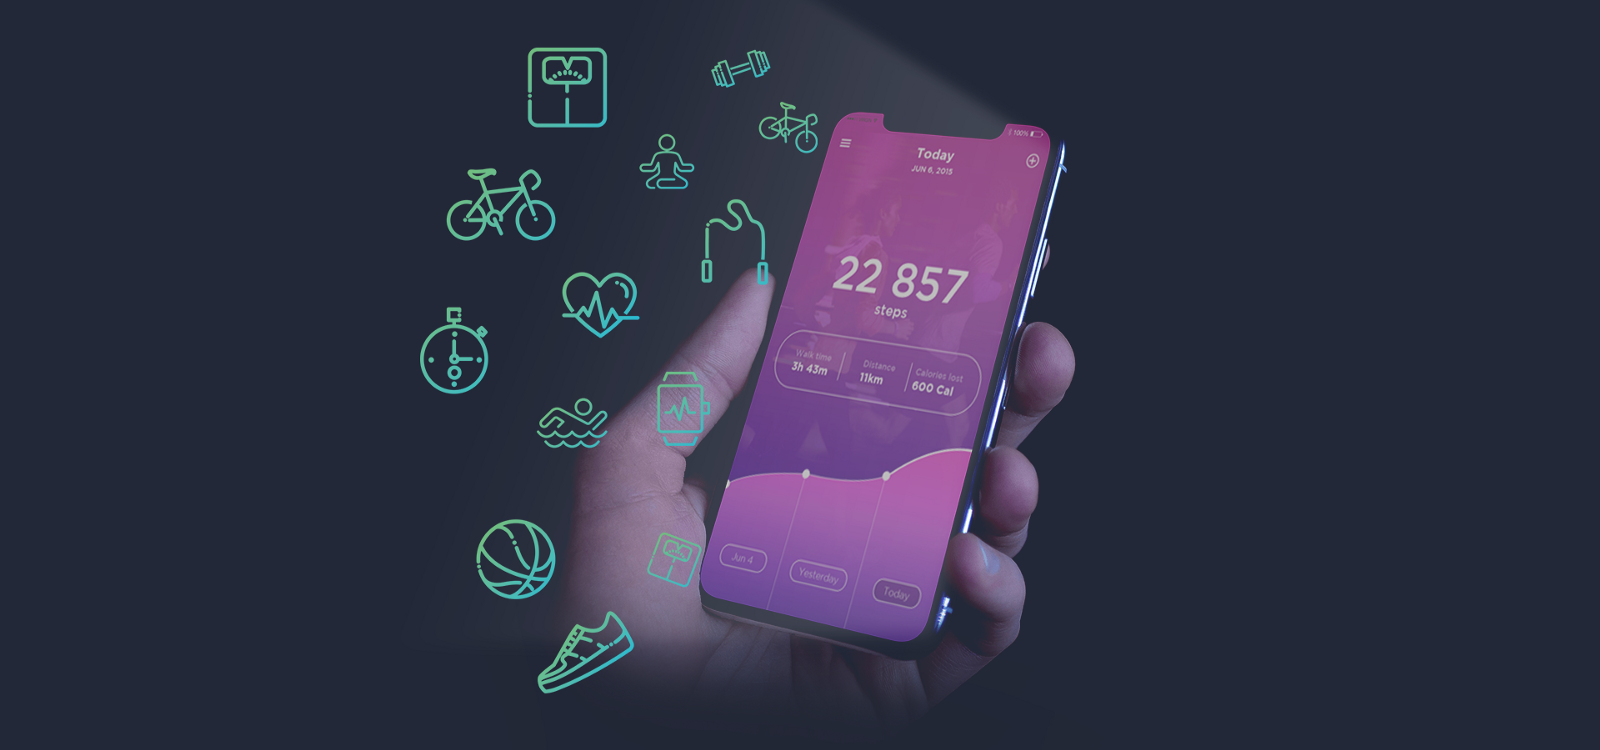 /cheat-sheet-top-kpis-to-measure-in-your-health-fitness-app-9439eafb9694 feature image